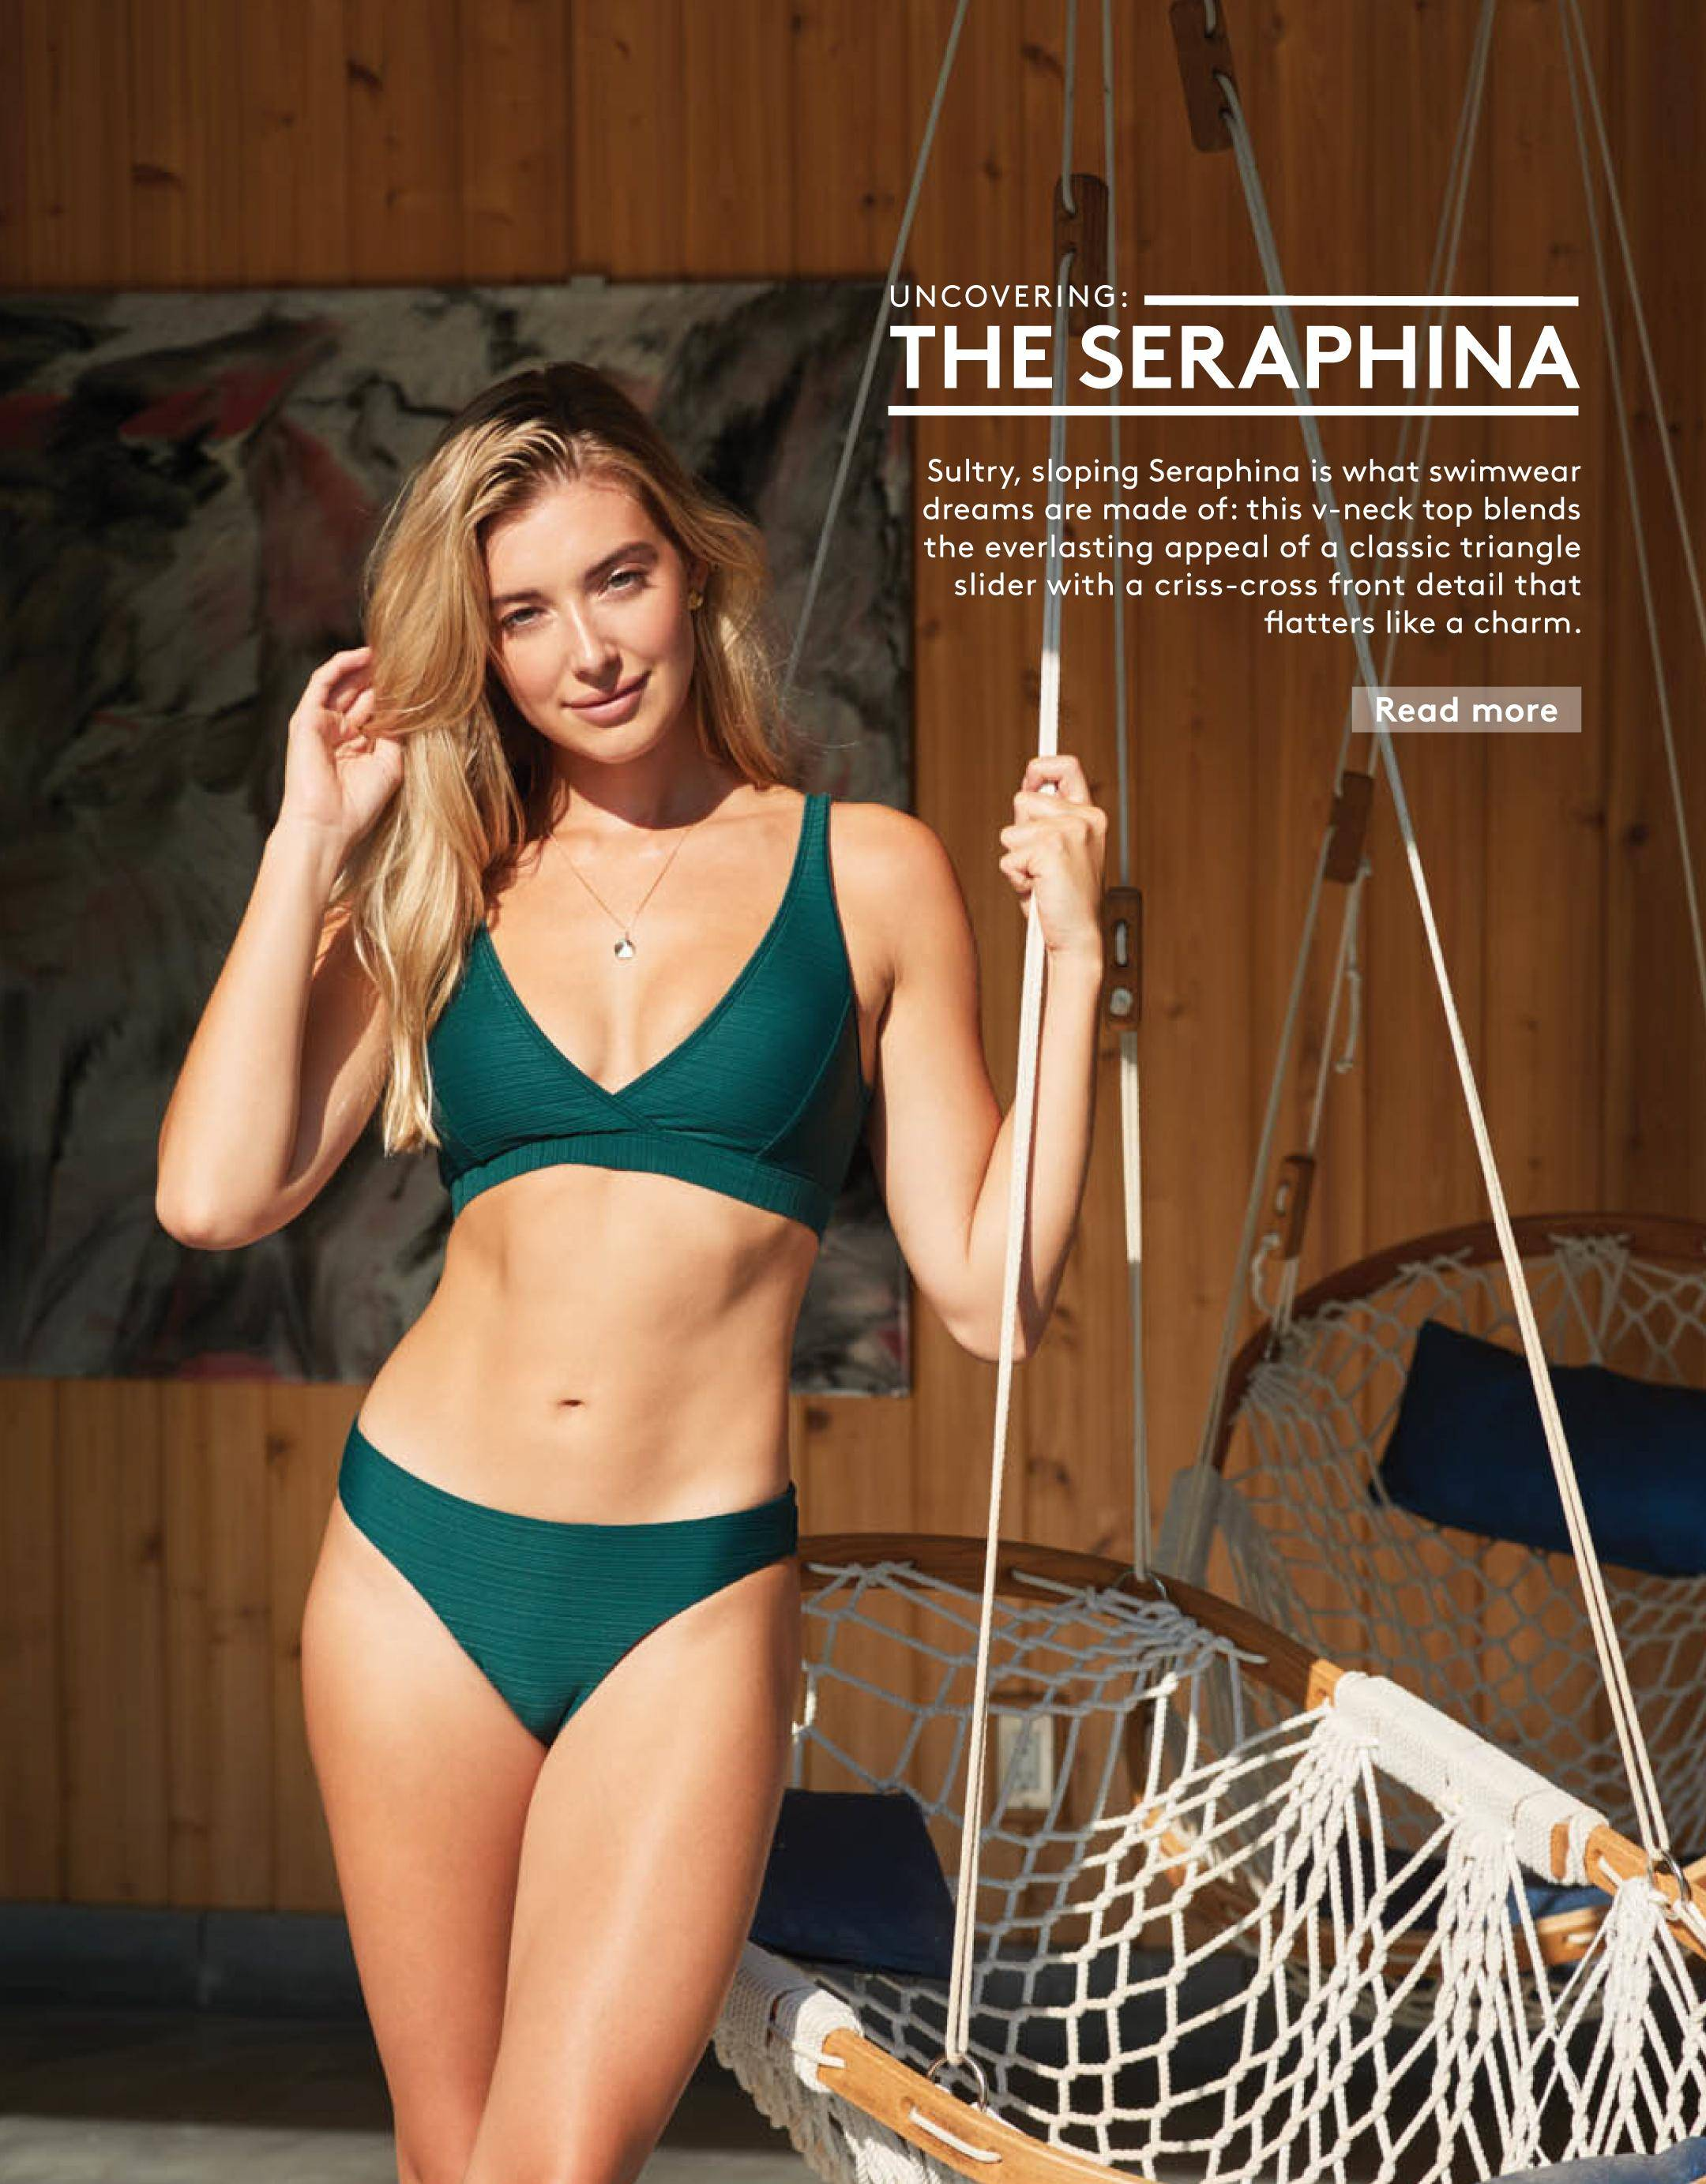 Read our Uncovering: The Seraphina blog post.